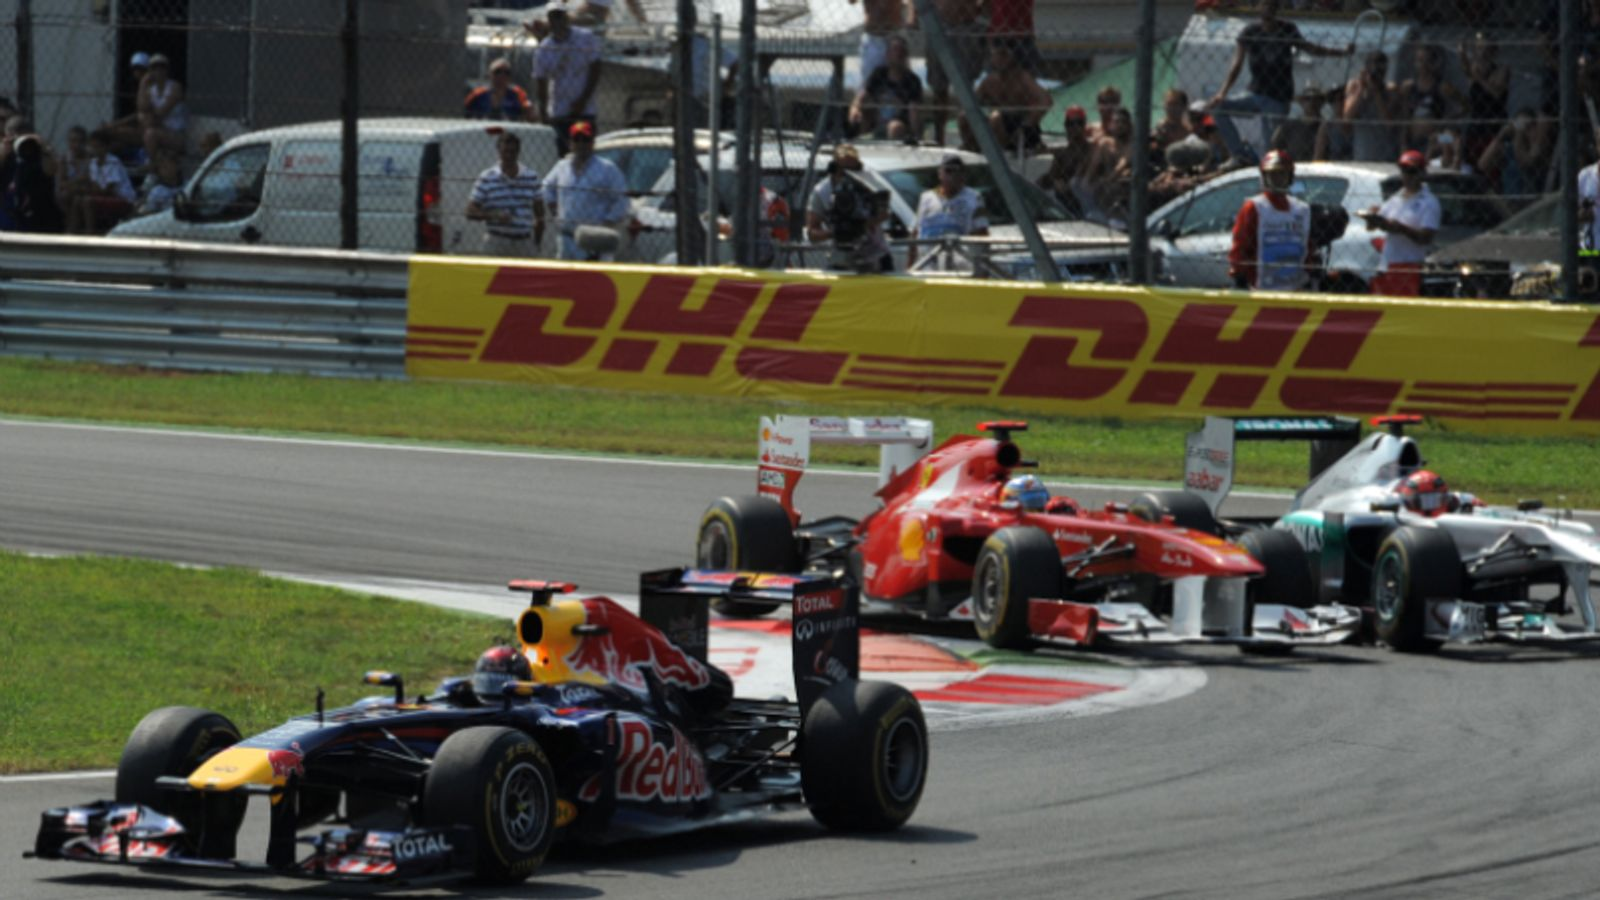 Indian GP unlikely till Jaypees financial health improves